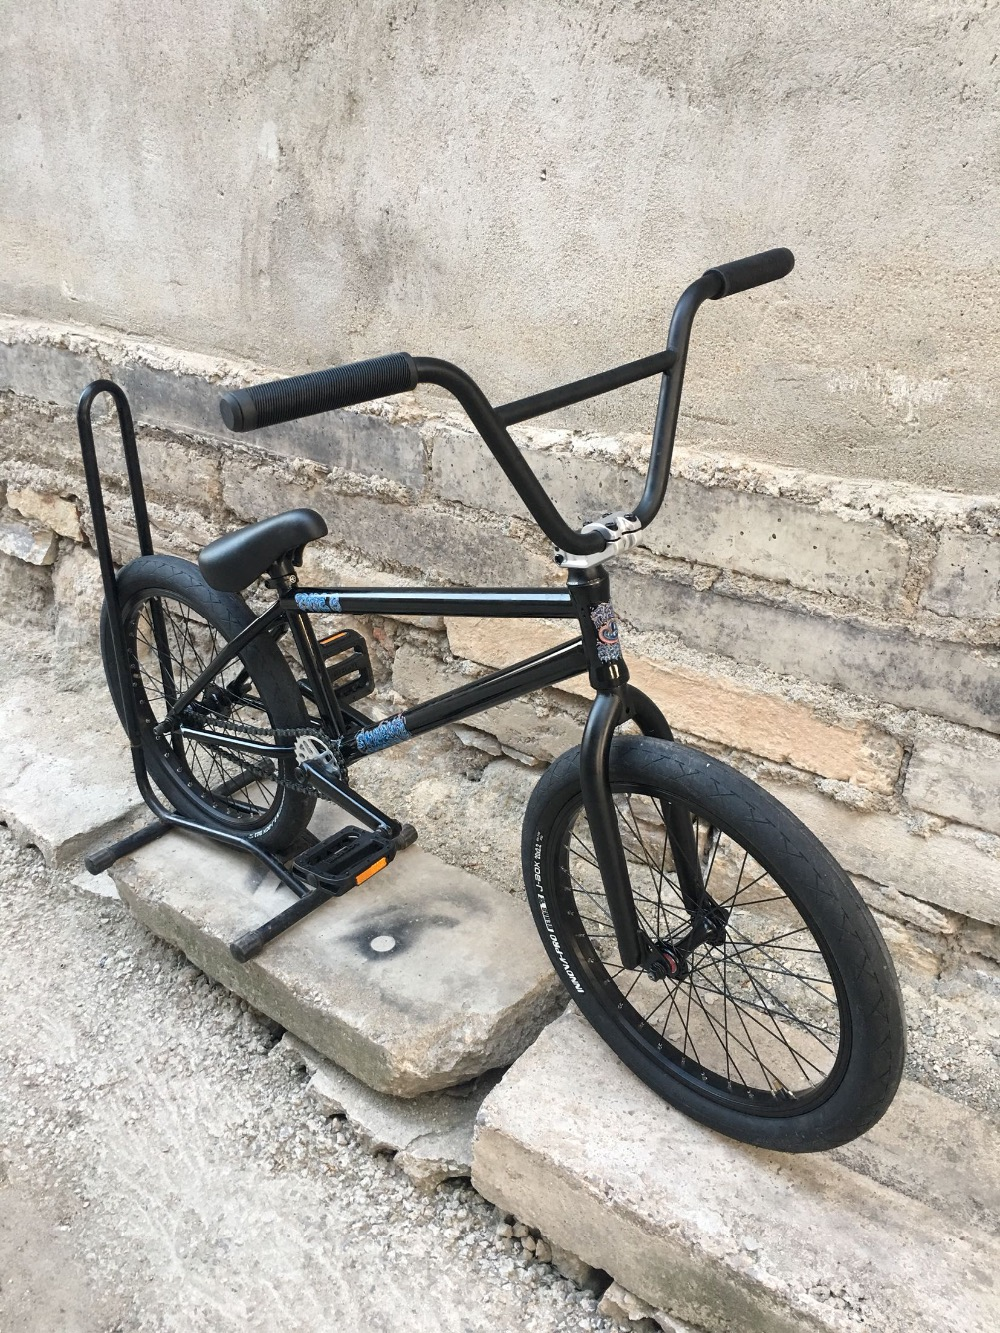 Fiend Type B Diy Bmx Bikes 20' Full Crmo Full Bearings 110psi Bears Tires